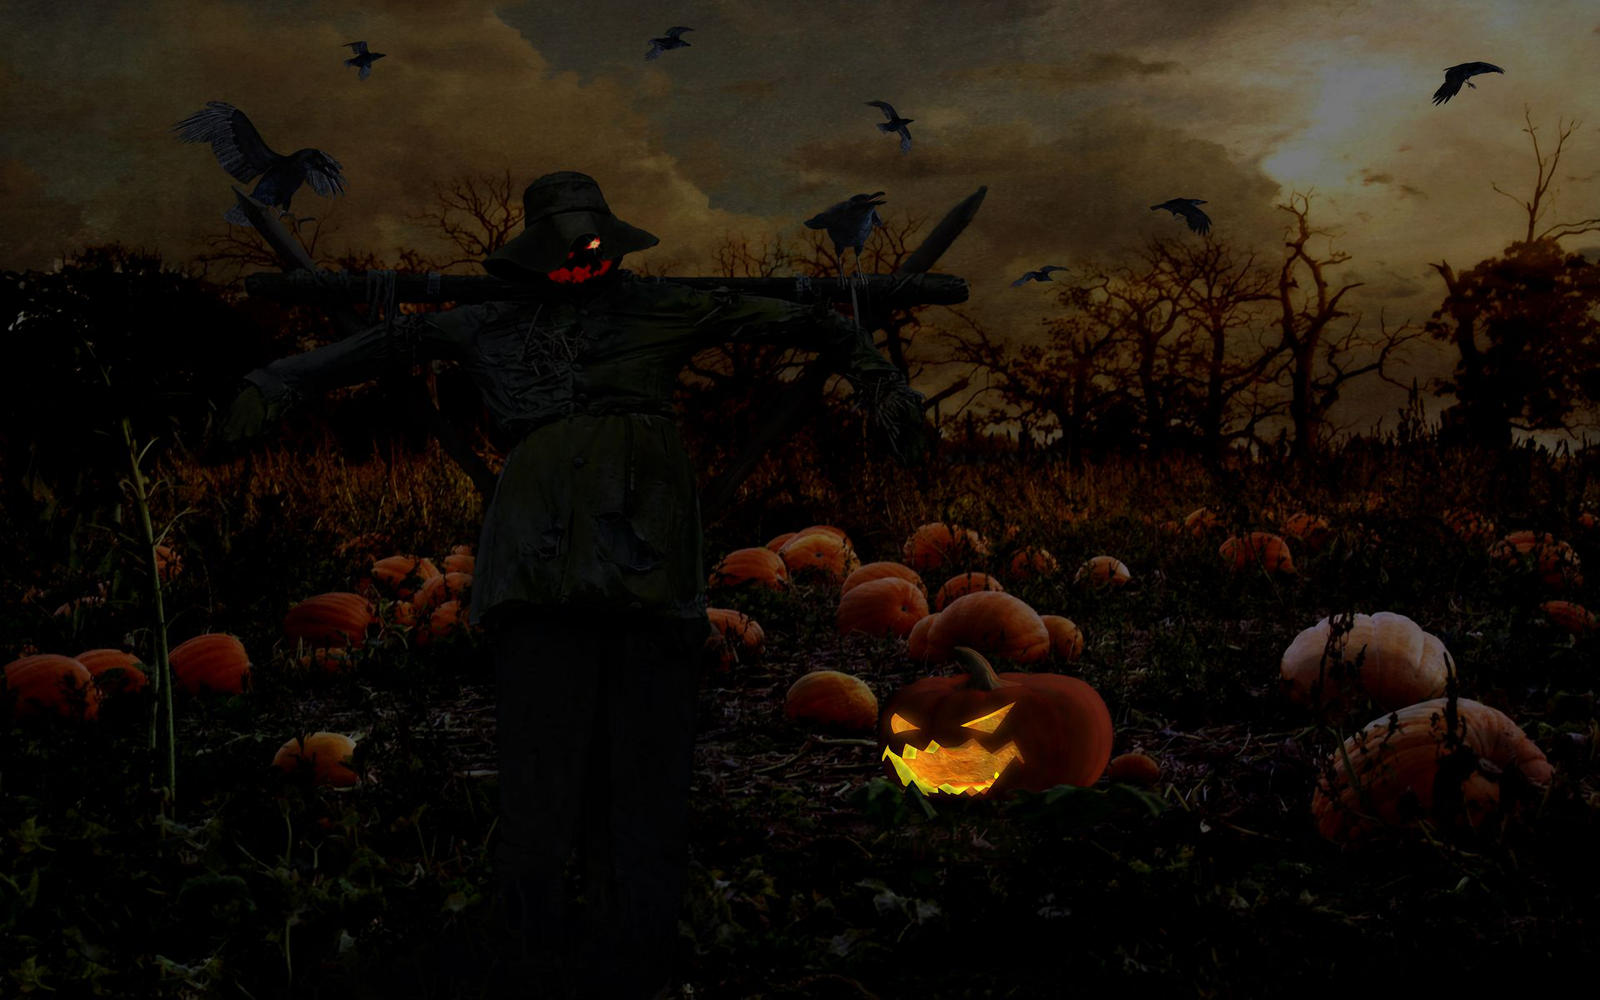 The Spirit of Halloween by ForeverBigBlue68 on DeviantArt